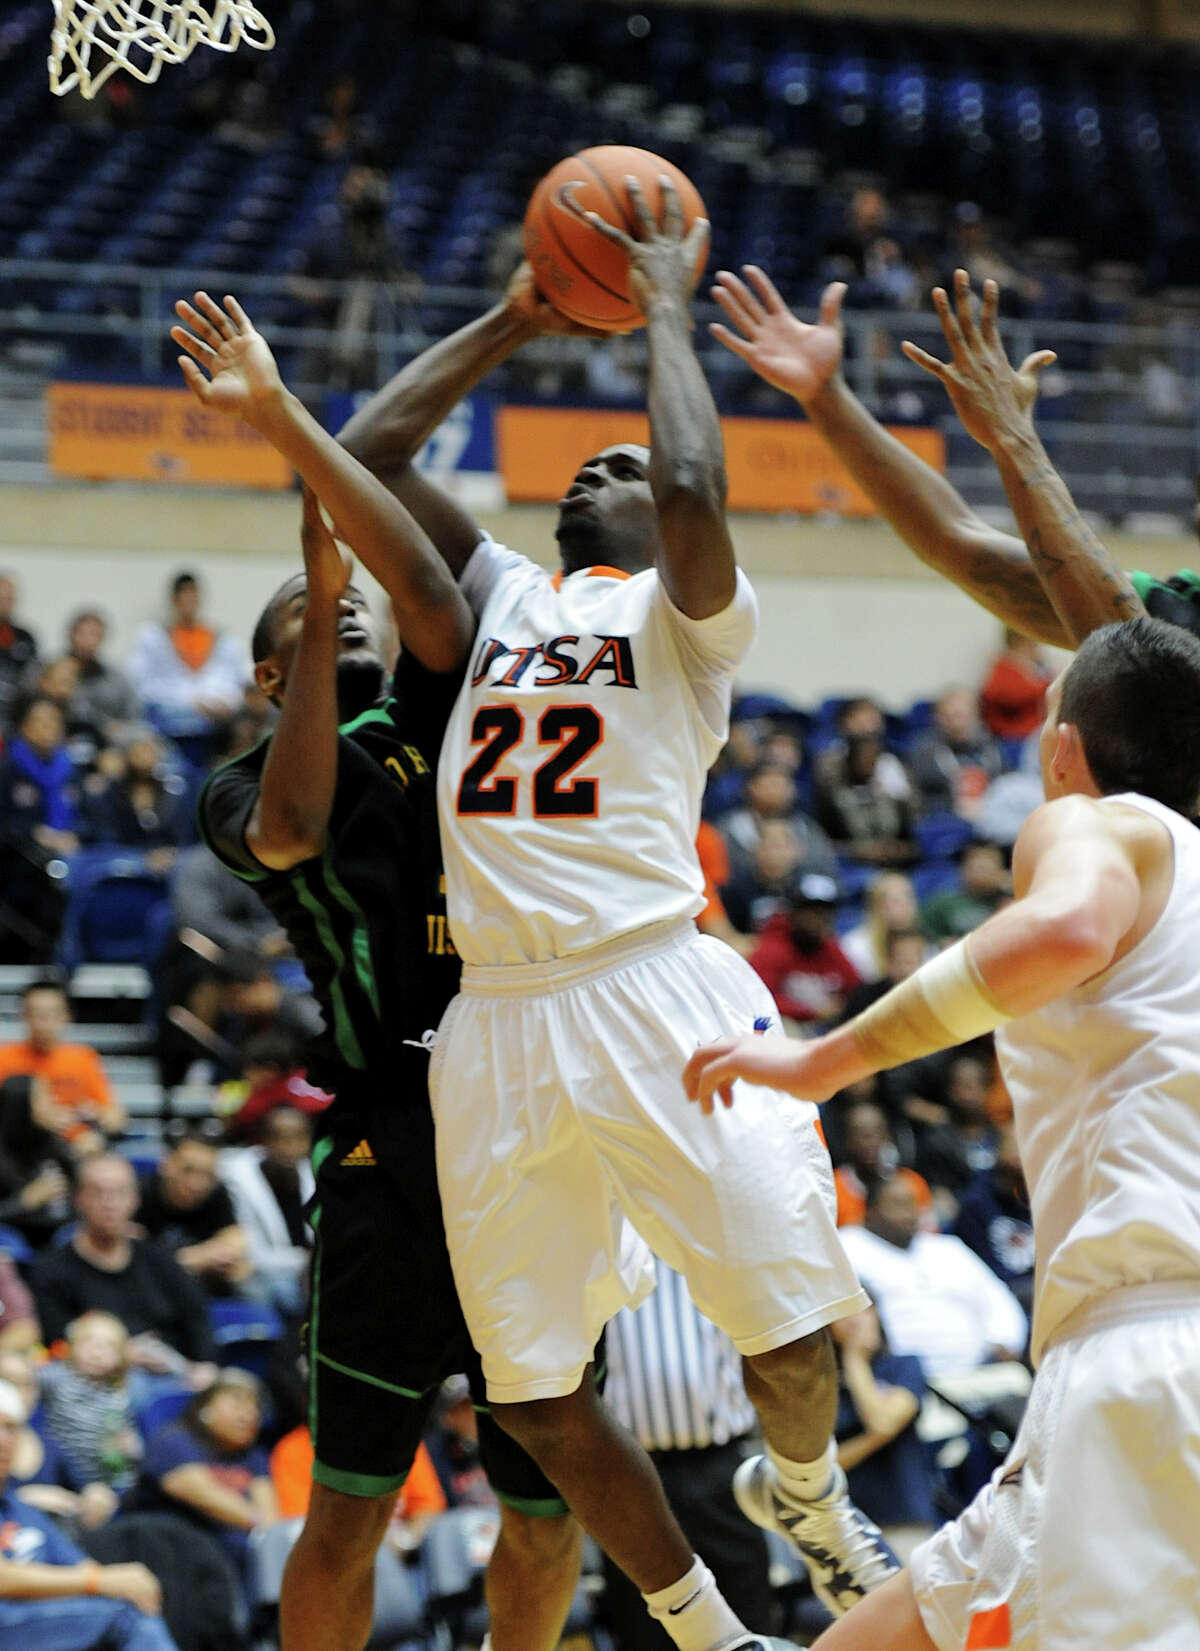 UTSA junior Kannon Burrage (22) is fouled while taking a shot during a Southland Conference mens basketball game between UTSA and Southeastern Louisiana at the UTSA Convocation Center In San Antonio, Texas on February 8, 2012. John Albright / Special to the Express-News.